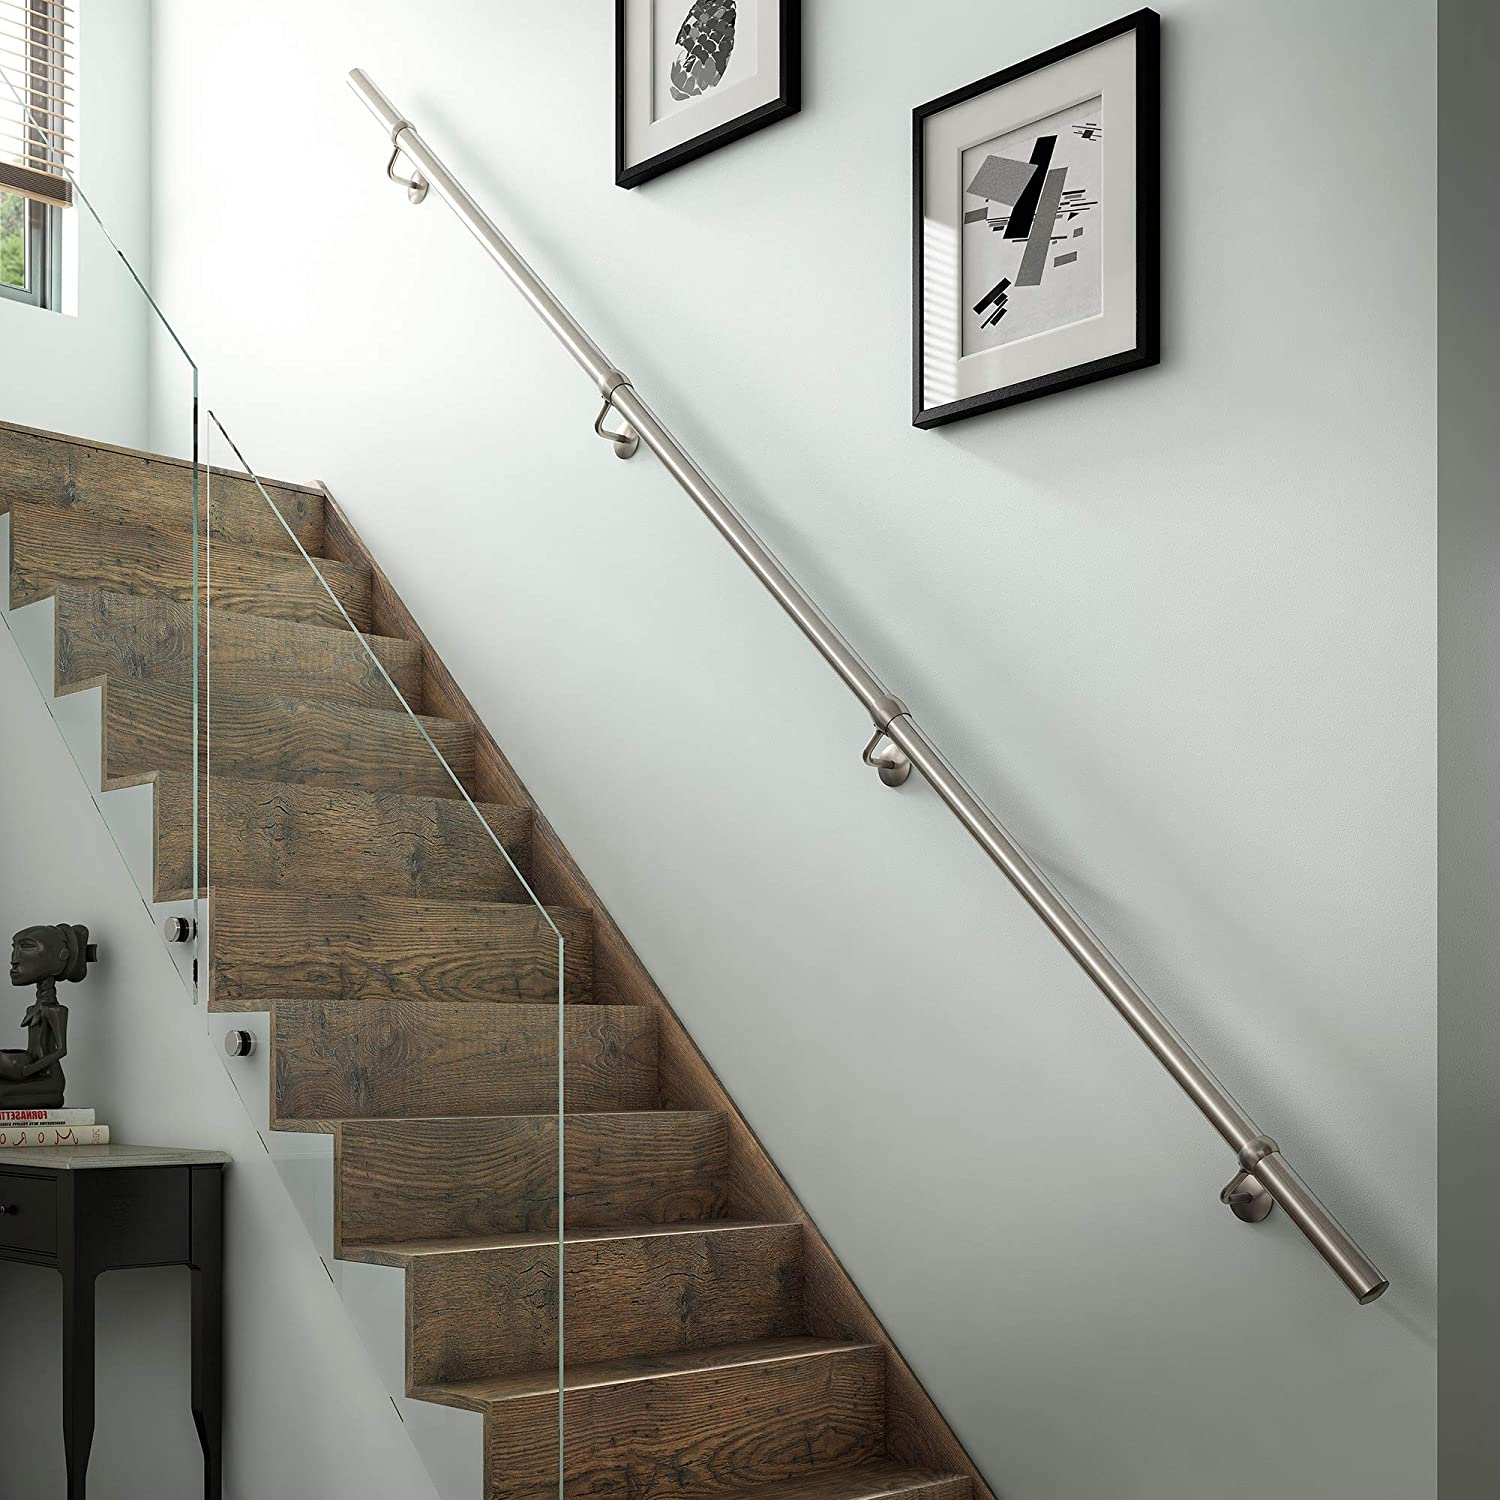 Stairs Staircase Handrail Banister Rail Support Kit 3 6M Satin | Buy Handrails For Stairs | Stair Systems | Wrought Iron Balusters | Wood | Stair Treads | Lj Smith